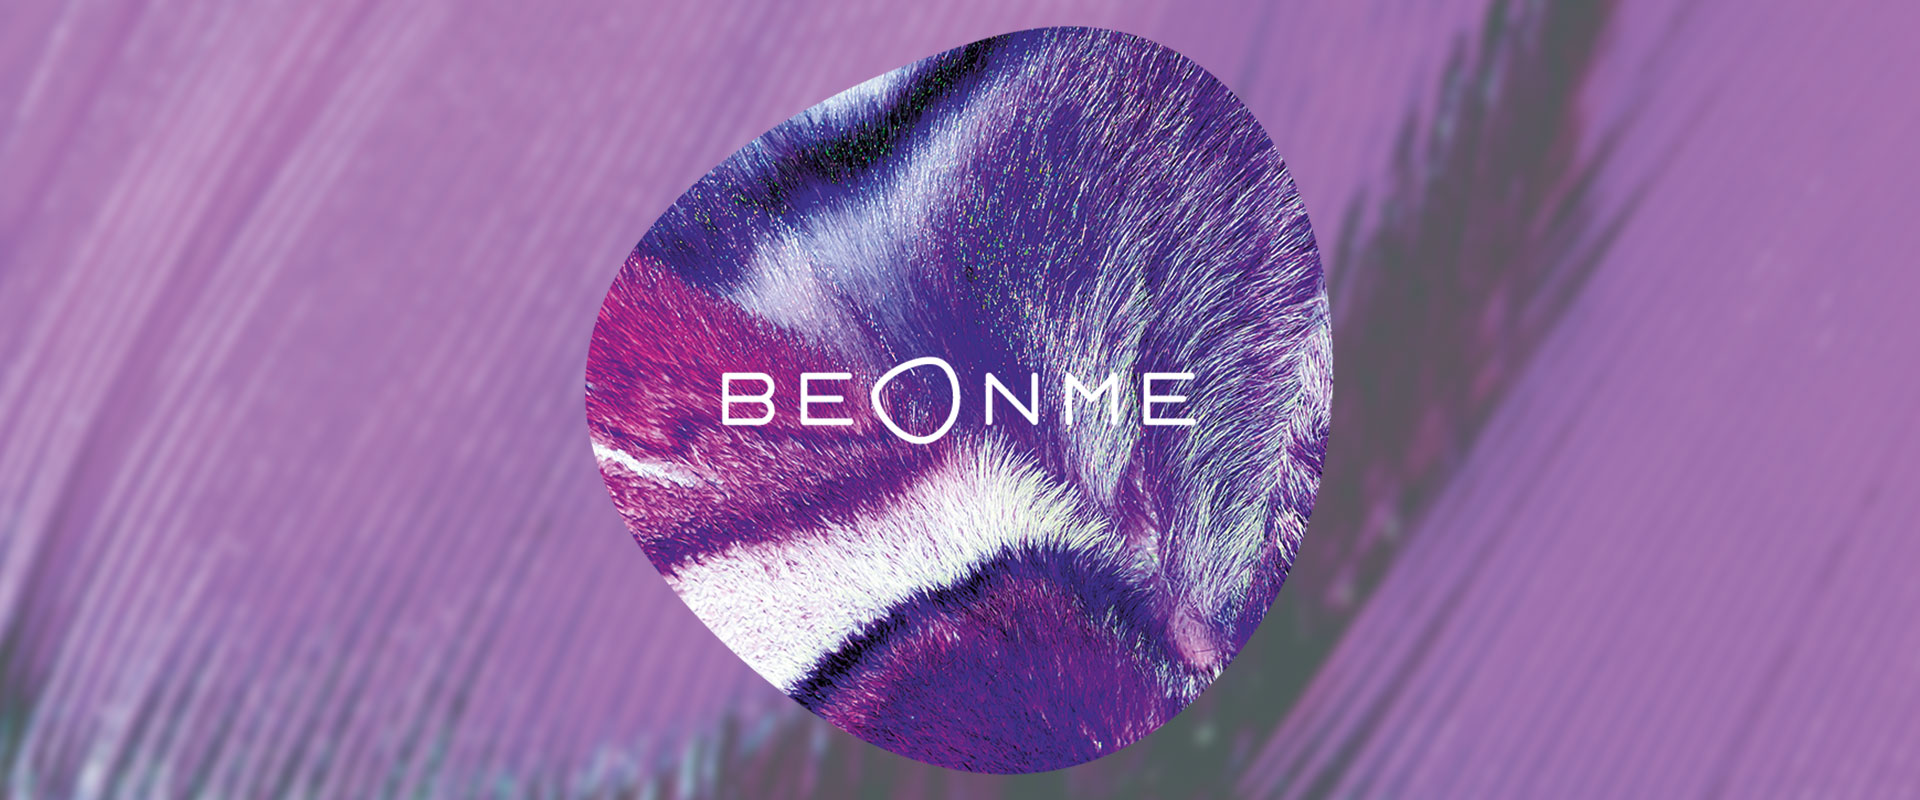 beonme-banner